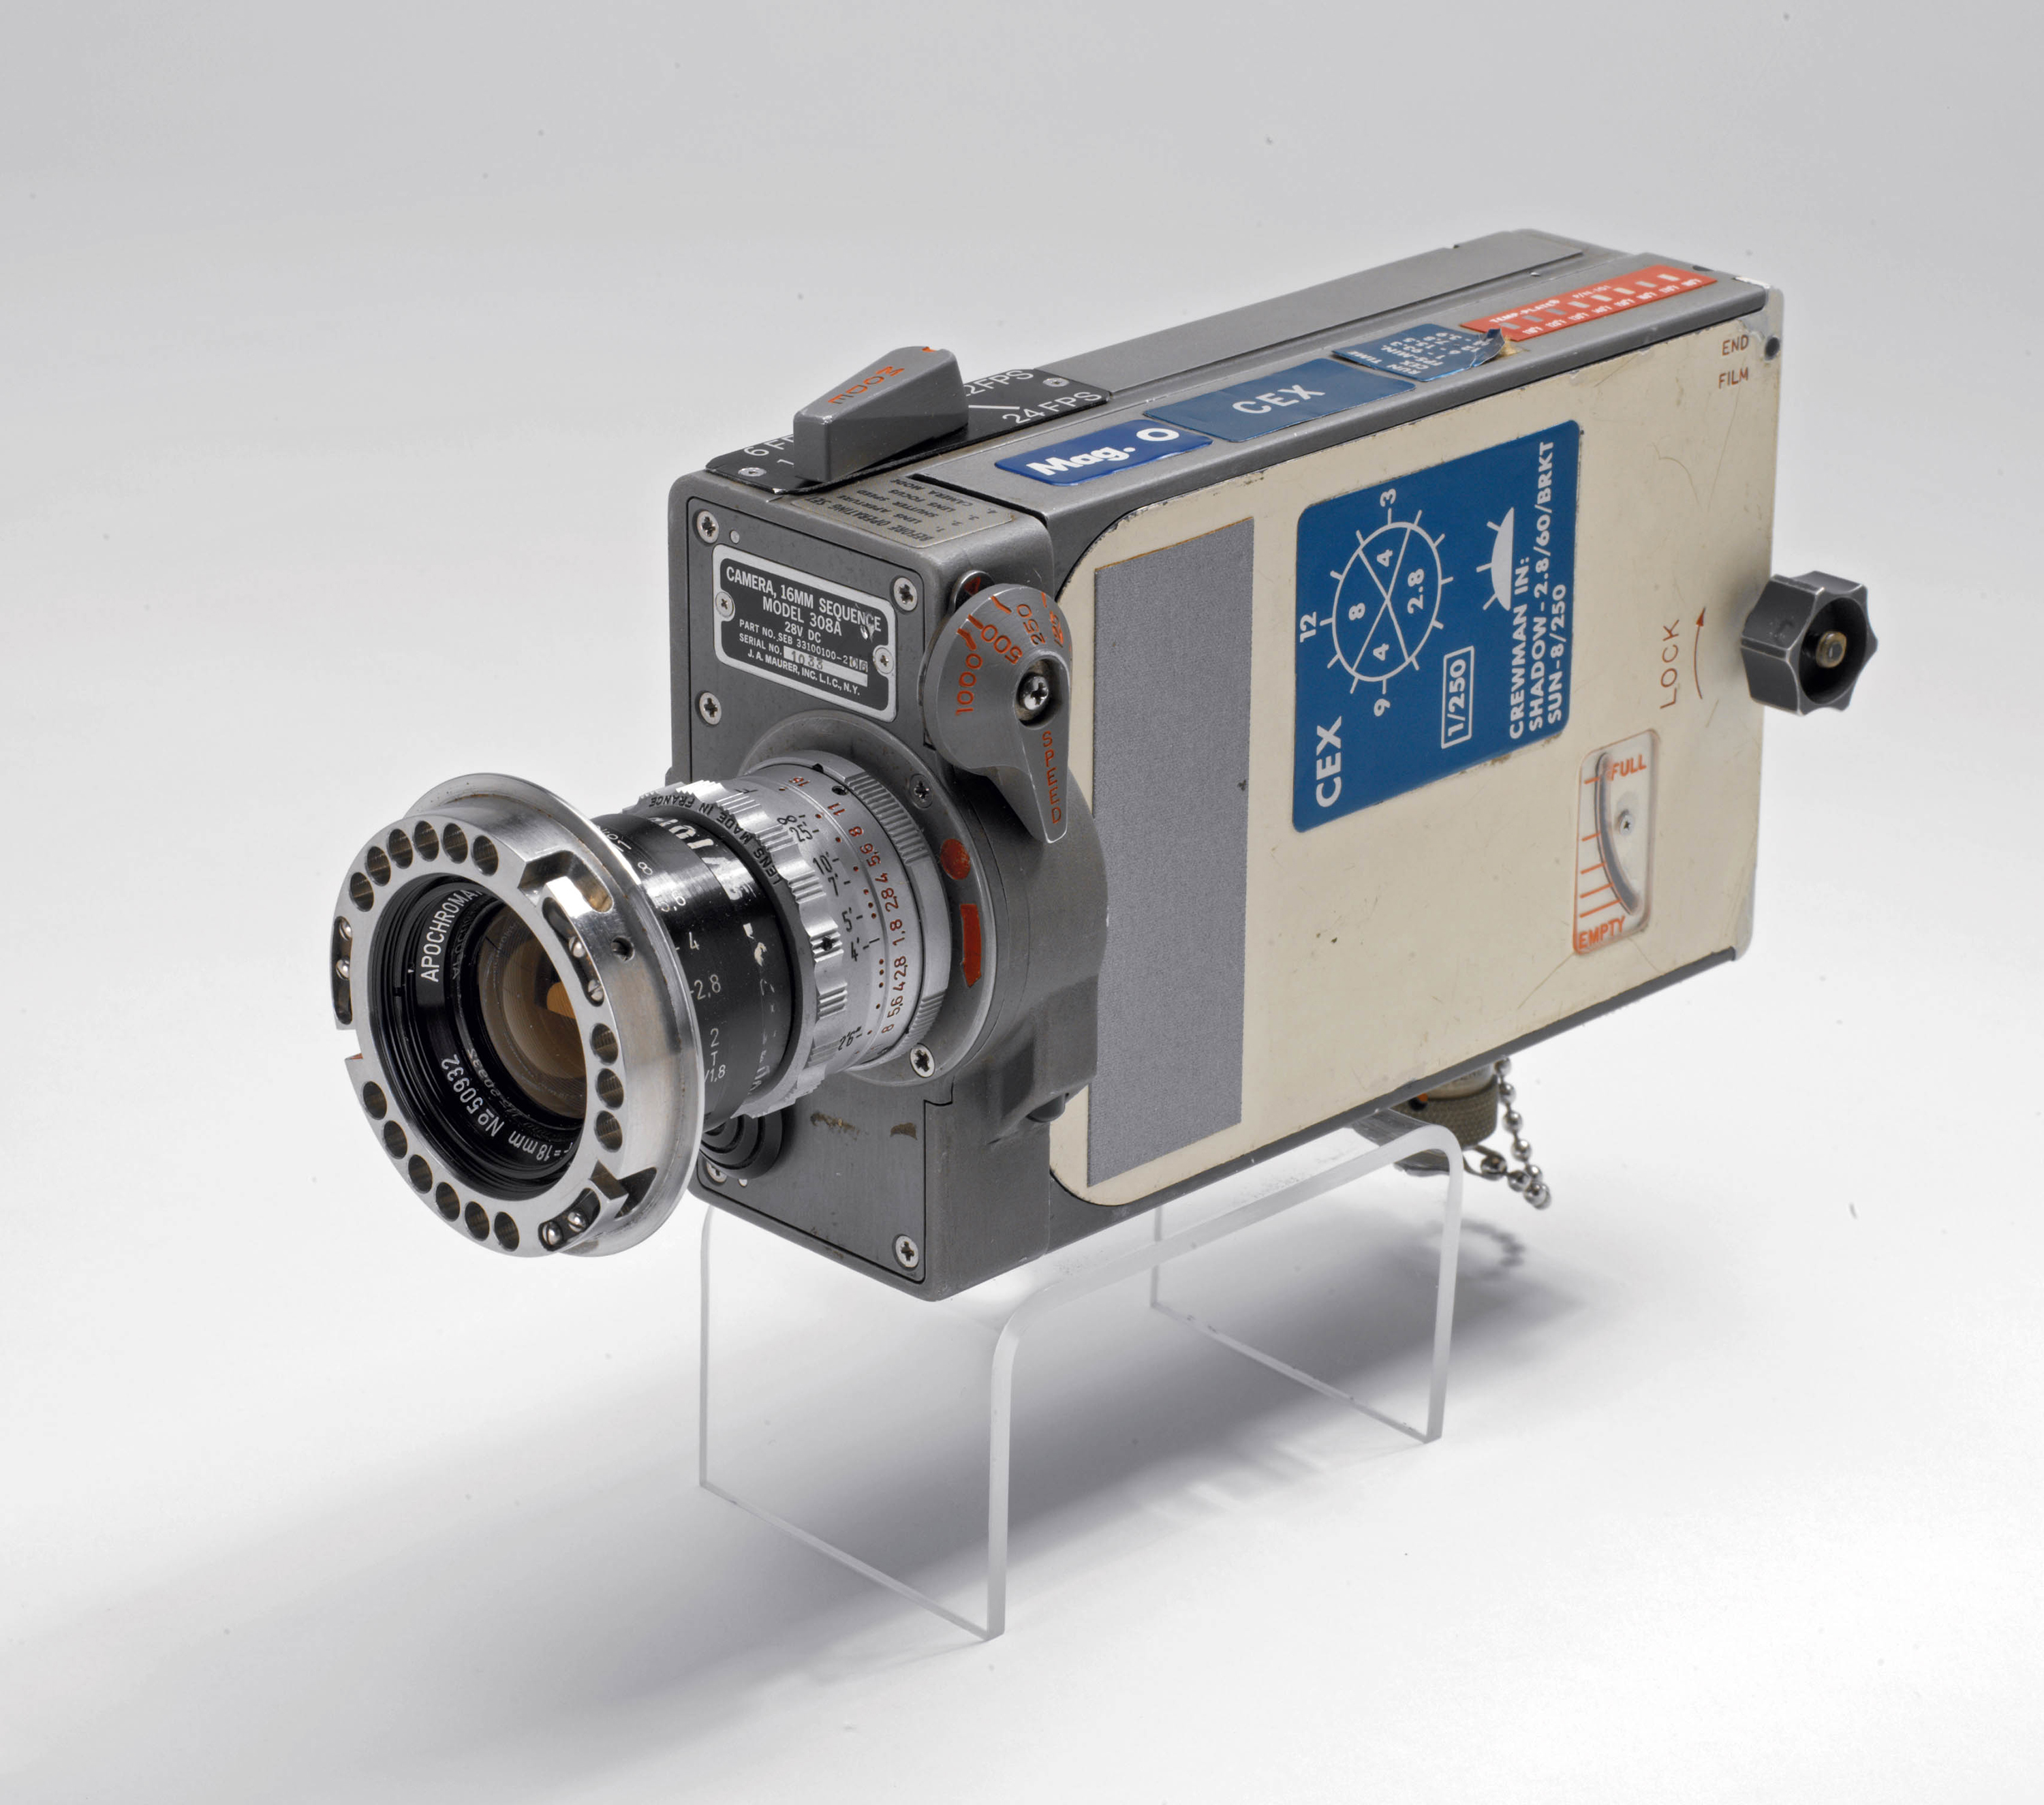 Apollo 12 Lunar Movie Camera | National Air and Space Museum